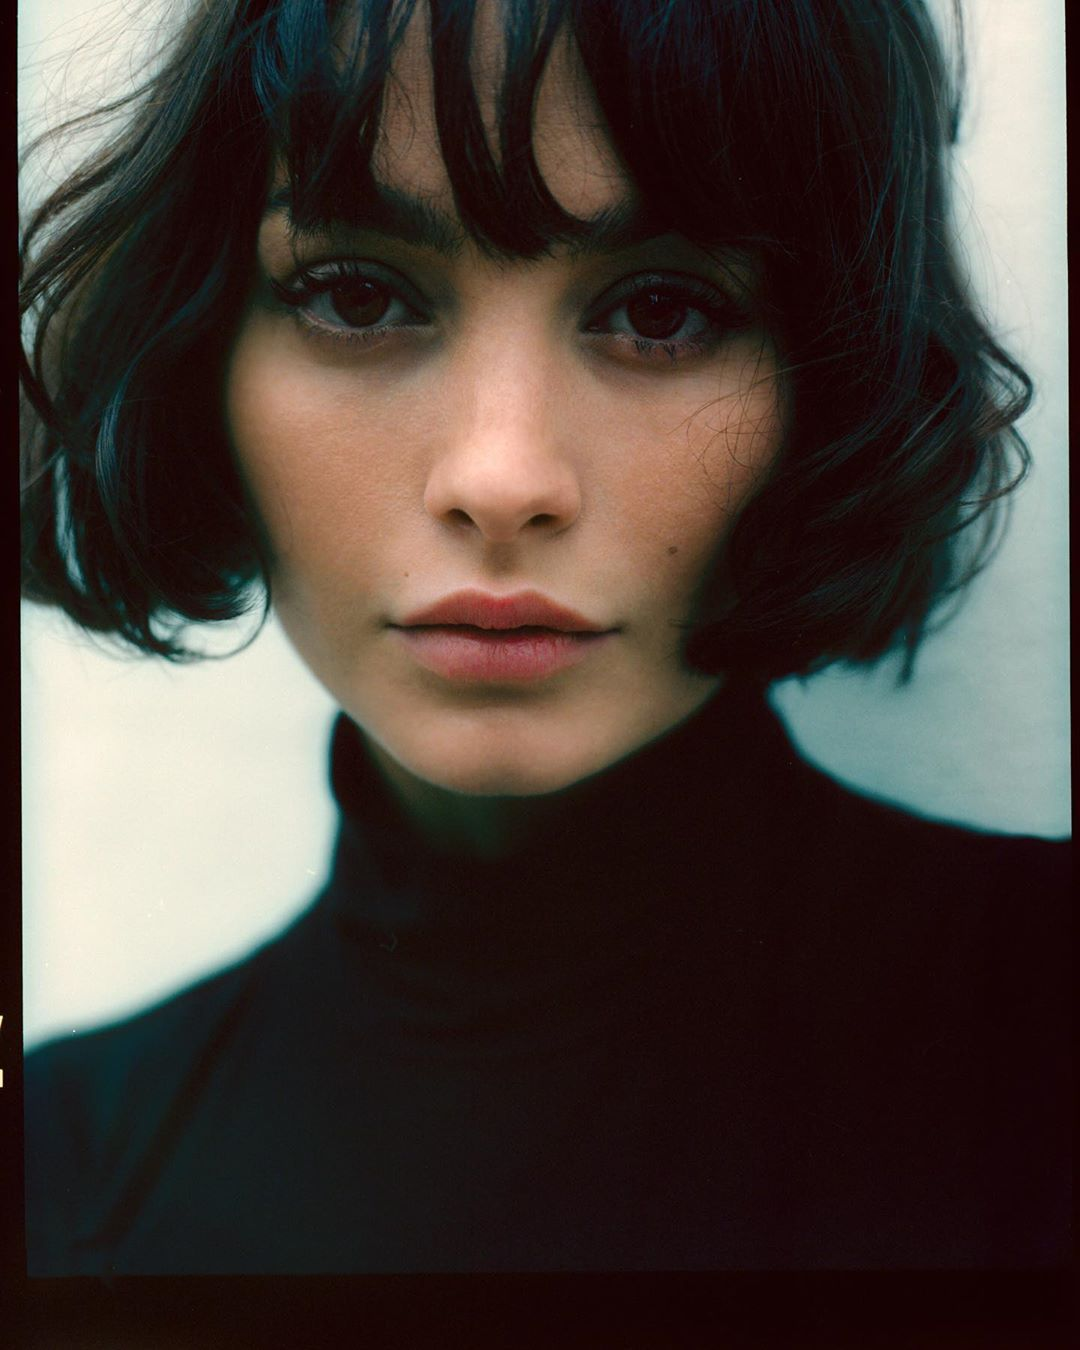 Bob hairstyles: why French girl bob is now the trend hairstyle